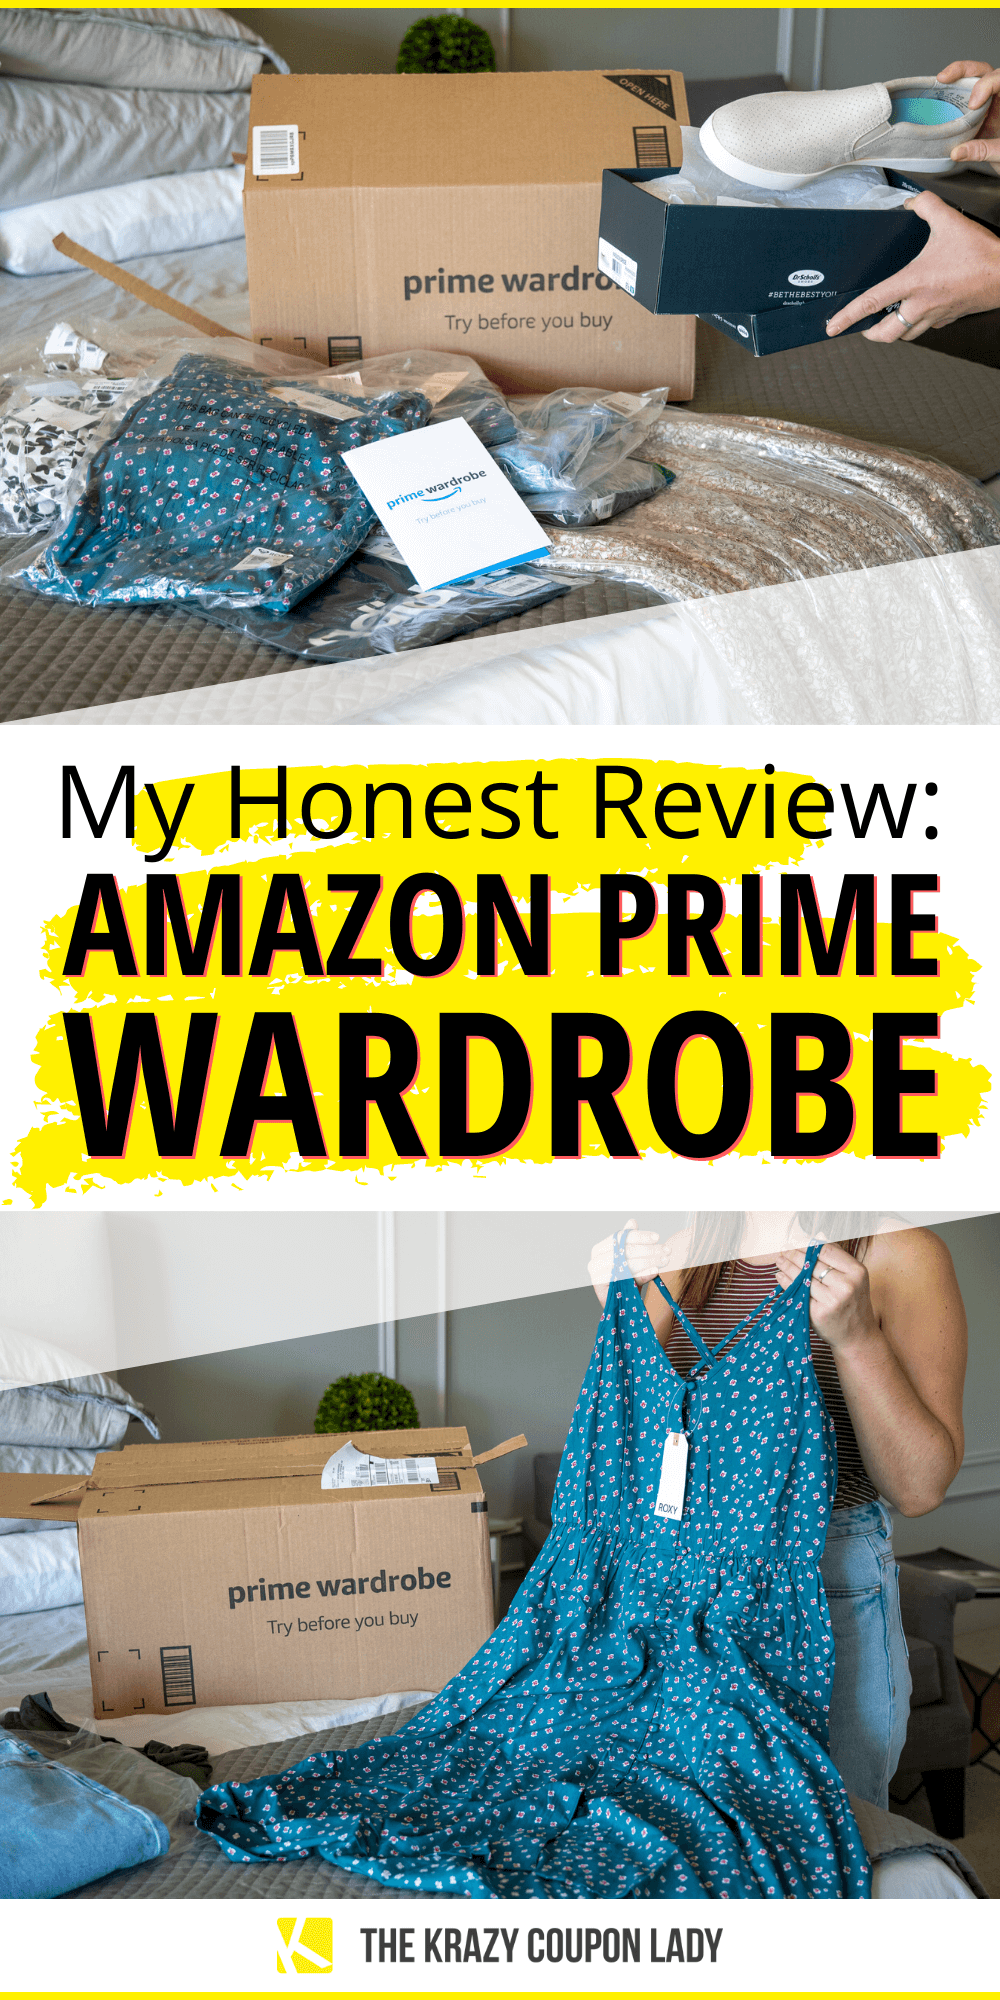 I Tried Amazon Prime Wardrobe and Here's My Honest Review